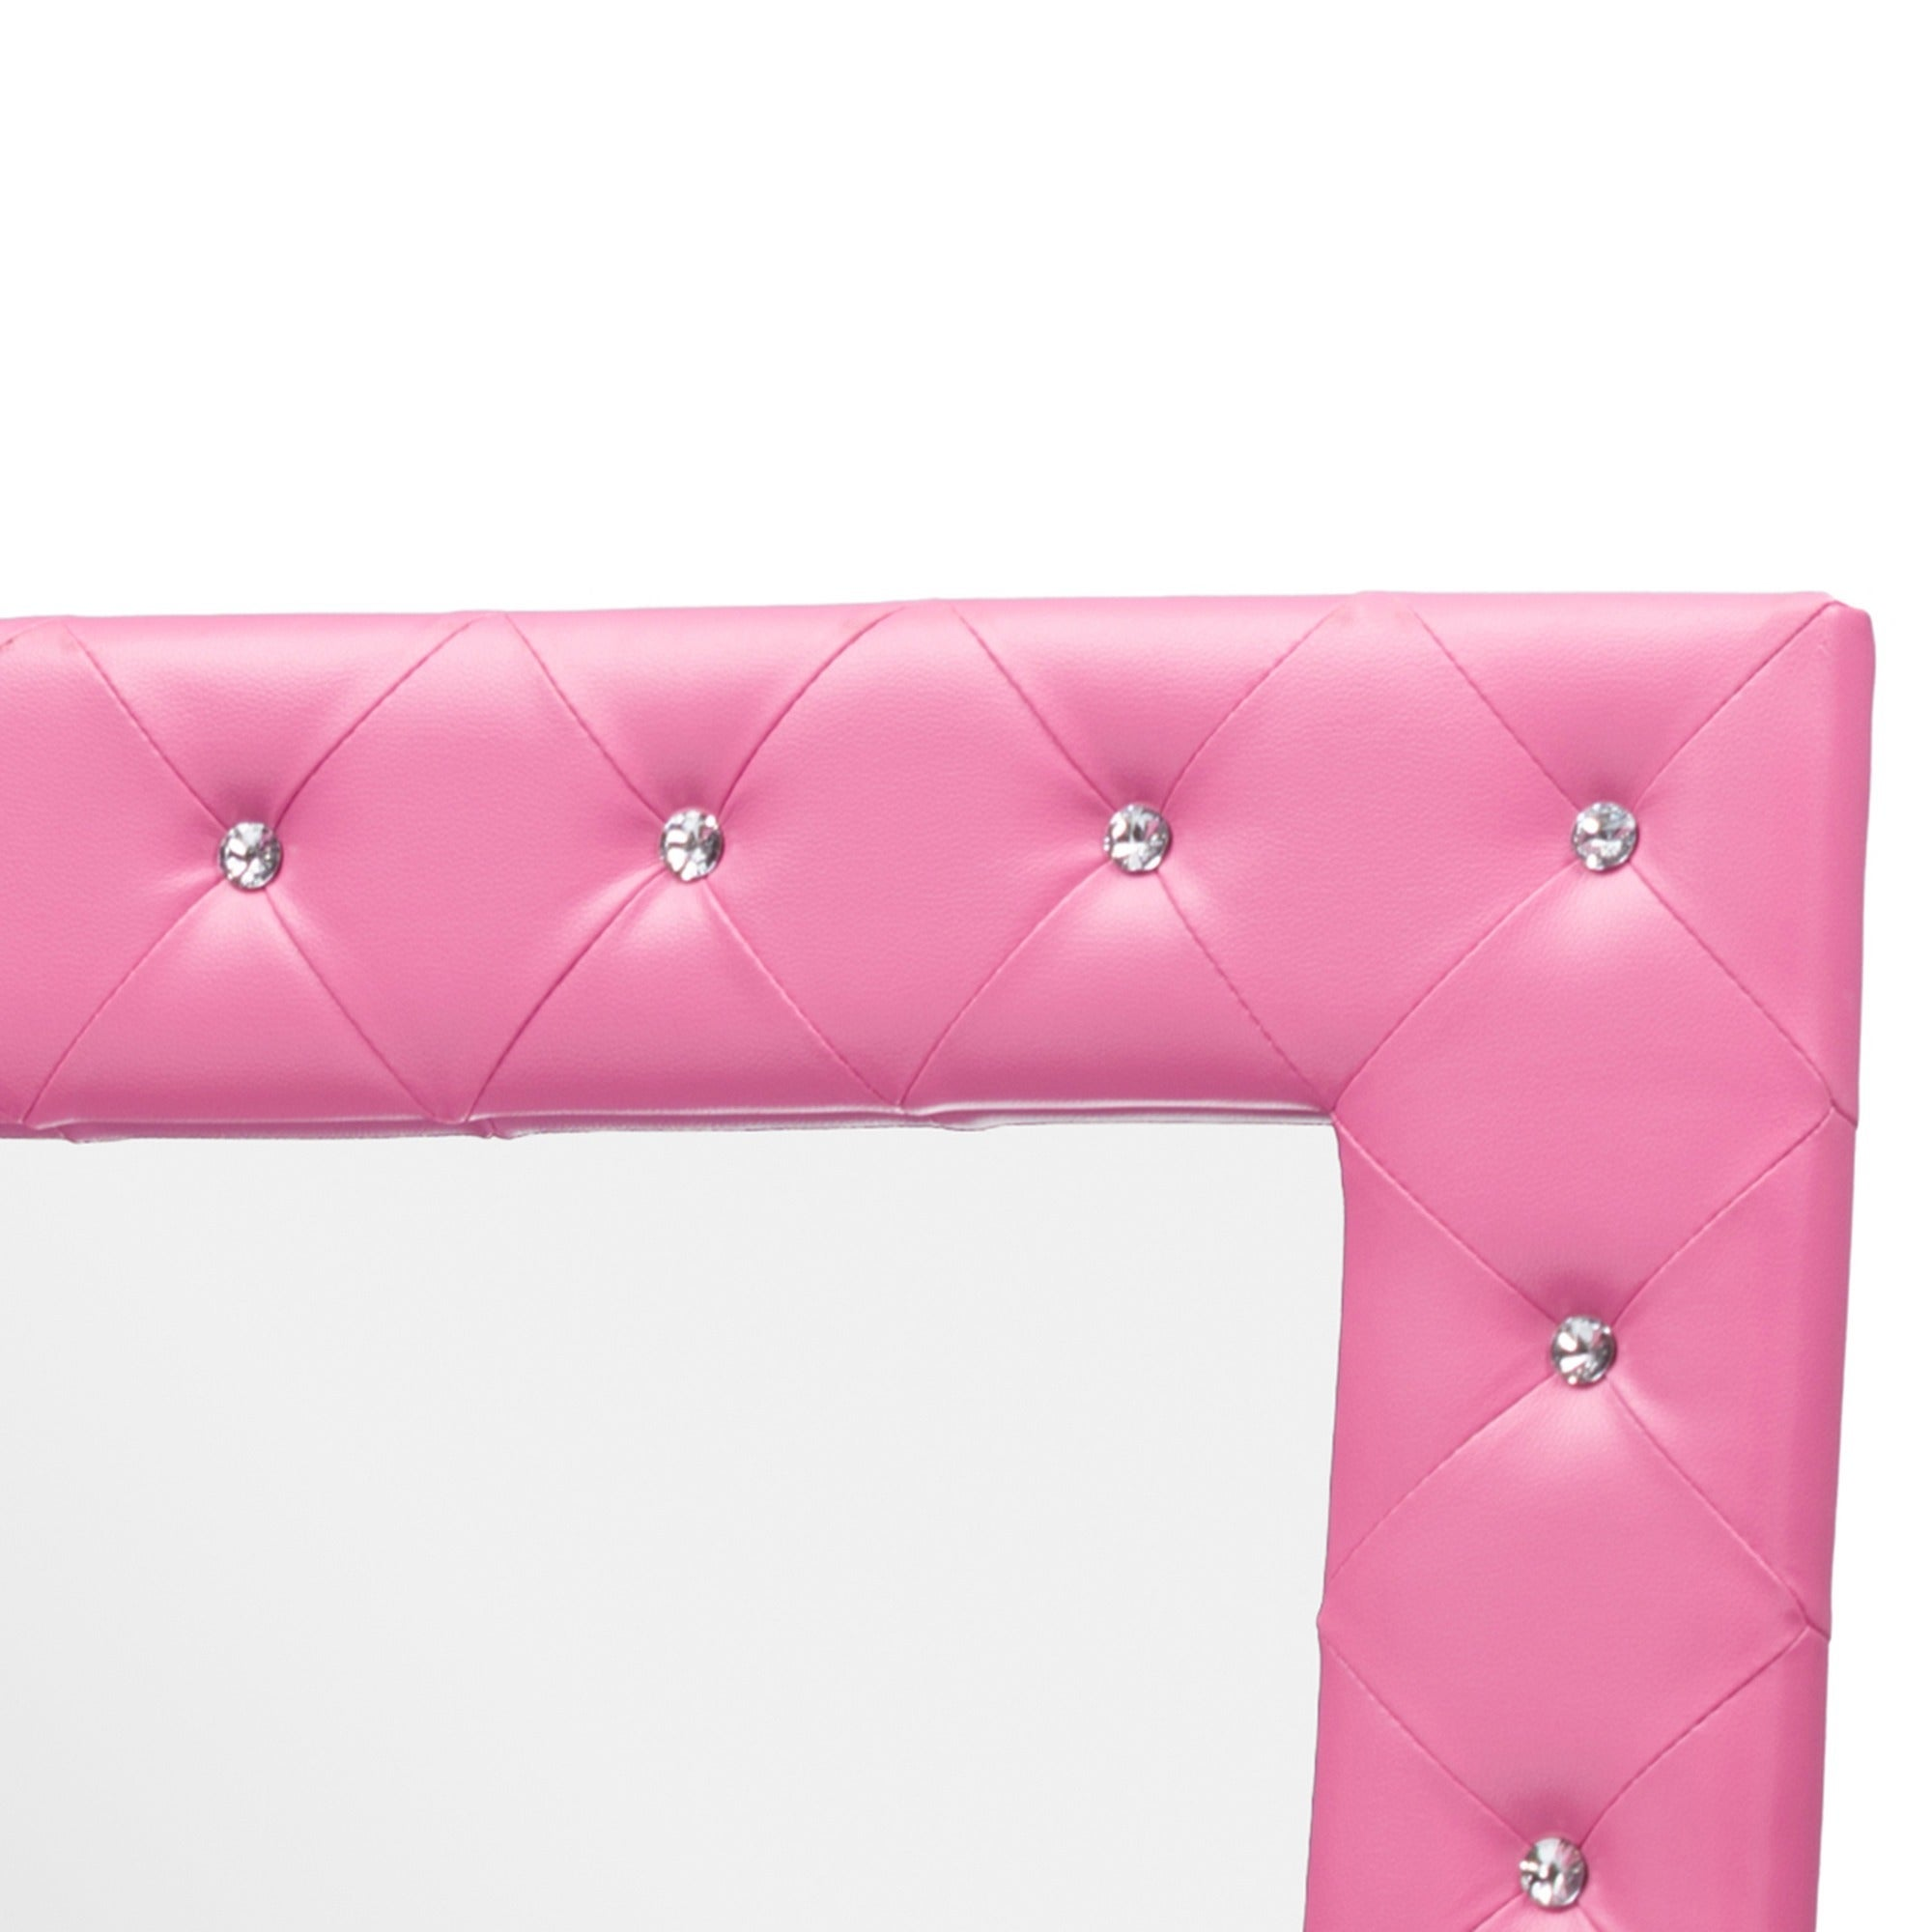 Silver Orchid Porten Crystal Tufted Pink Floor Mirror Free Shipping Today 20543540